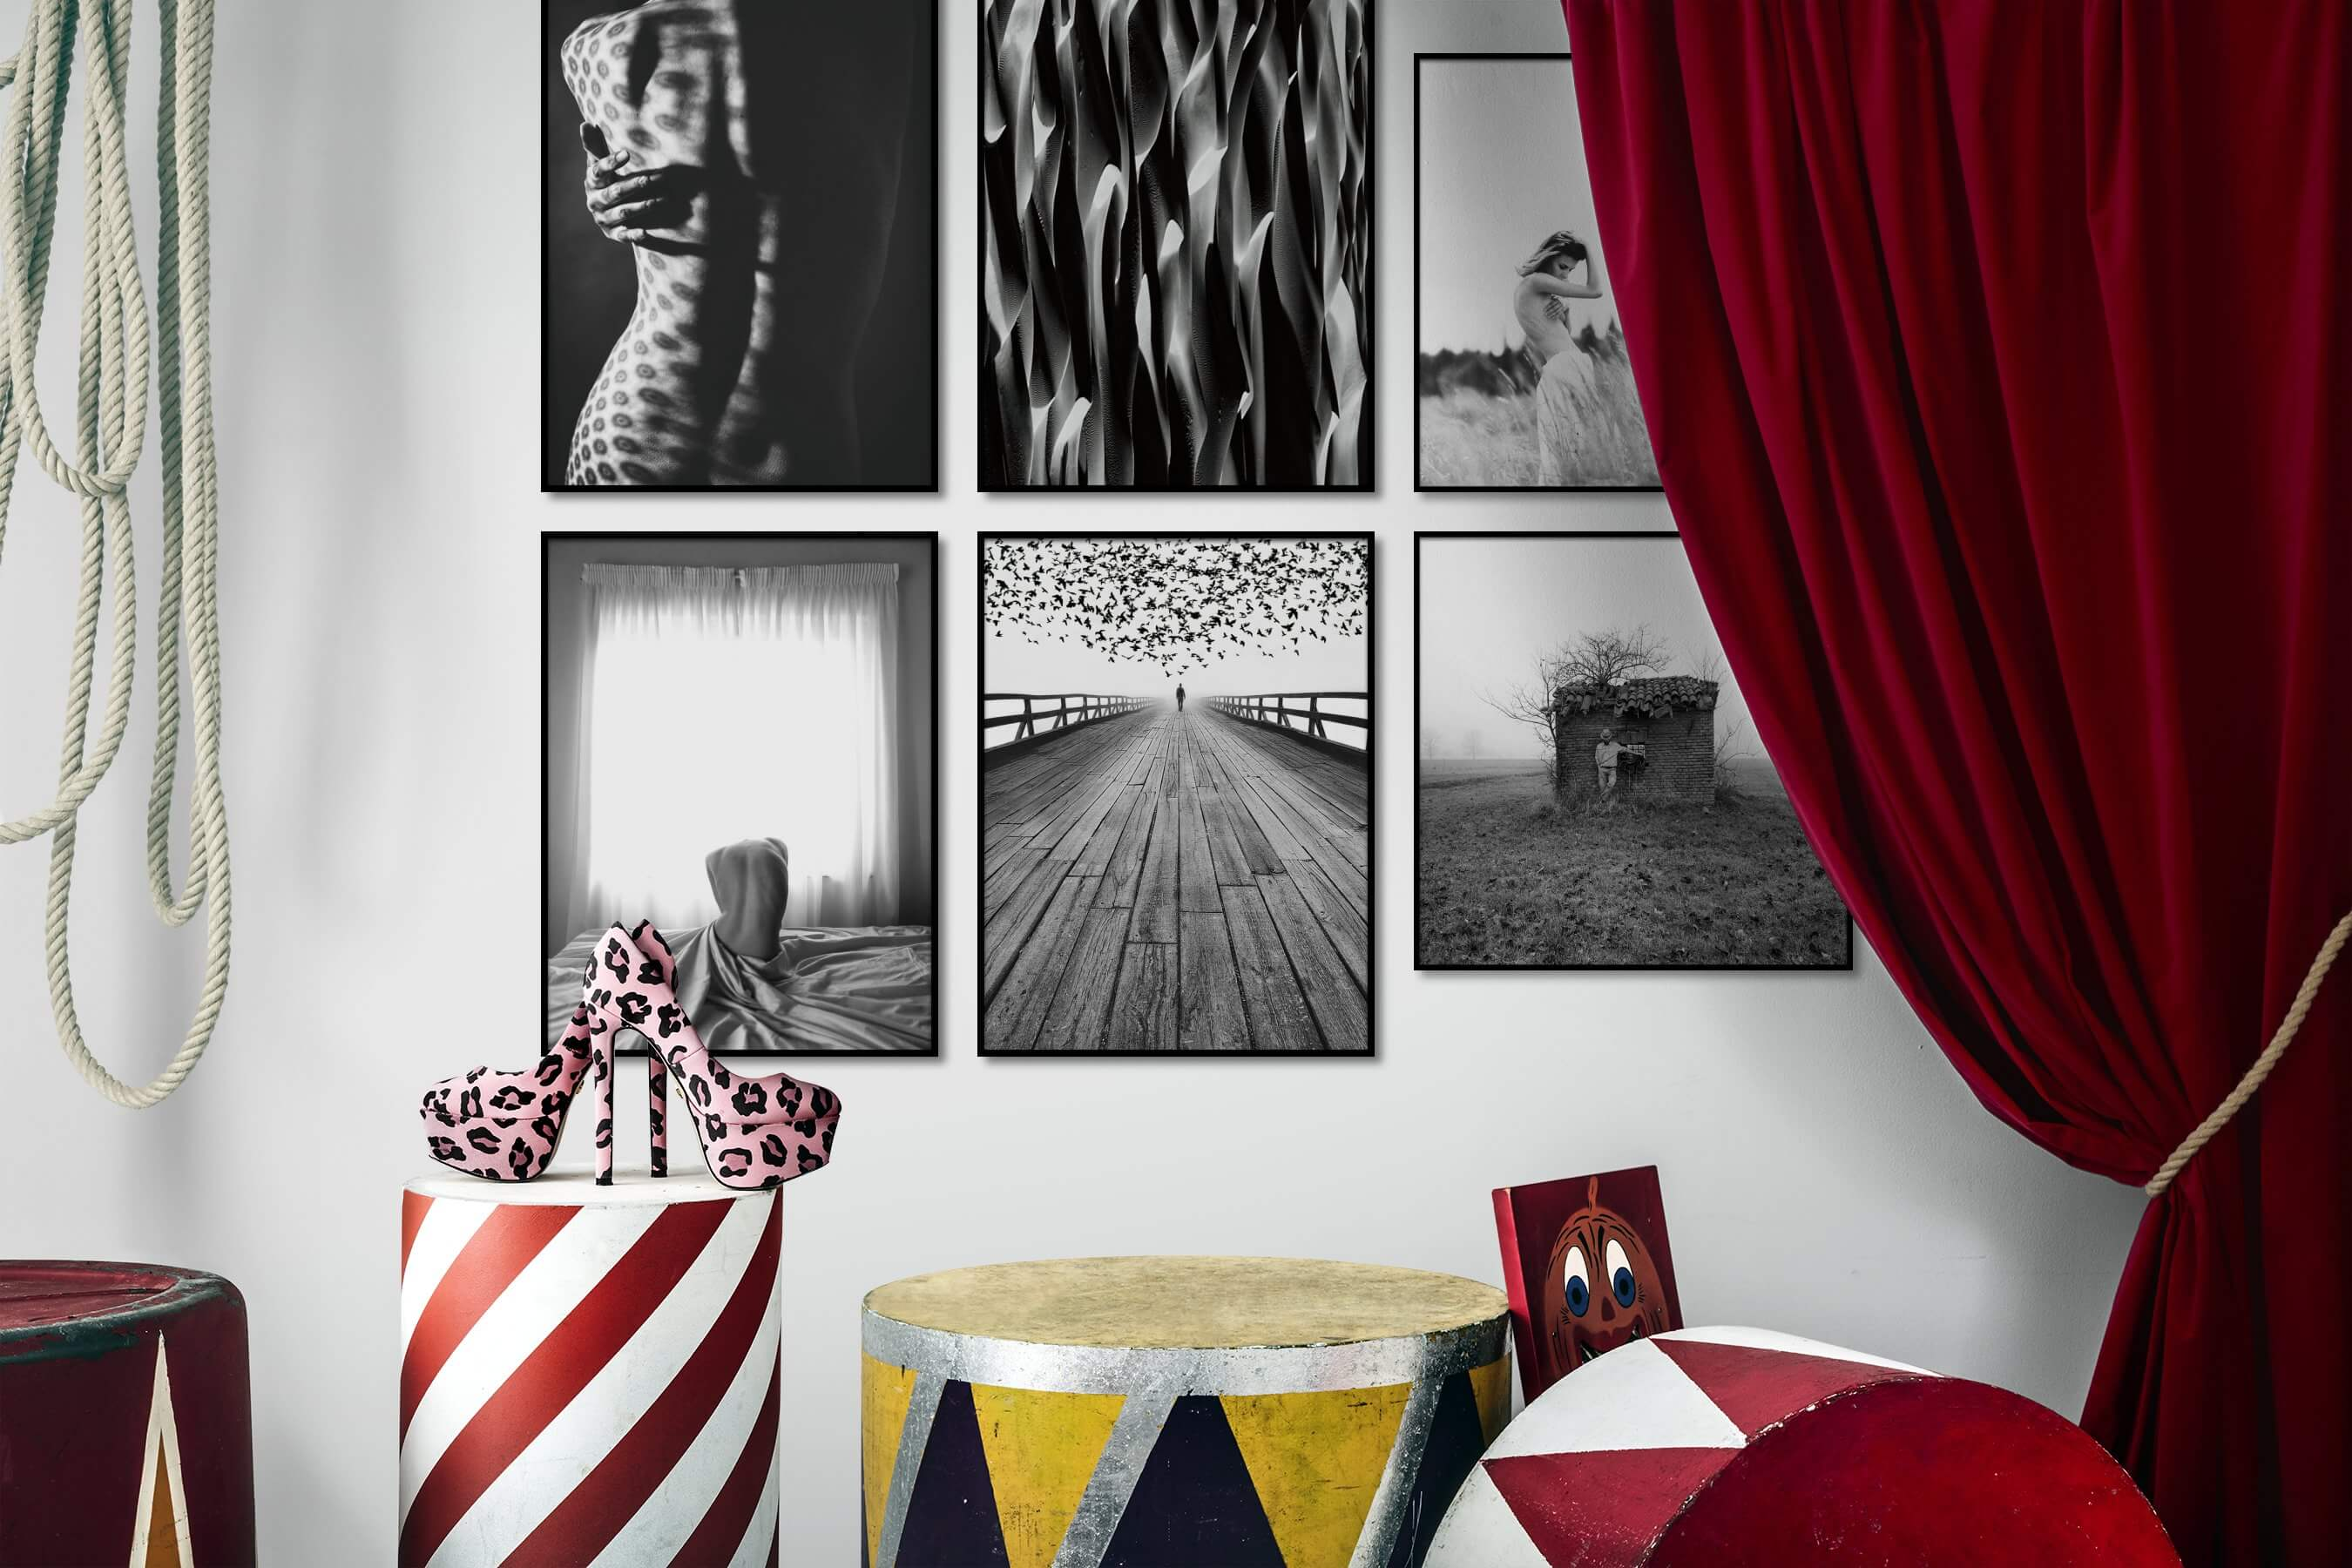 Gallery wall idea with six framed pictures arranged on a wall depicting Fashion & Beauty, Black & White, For the Maximalist, Nature, Artsy, Mindfulness, Bright Tones, and Country Life